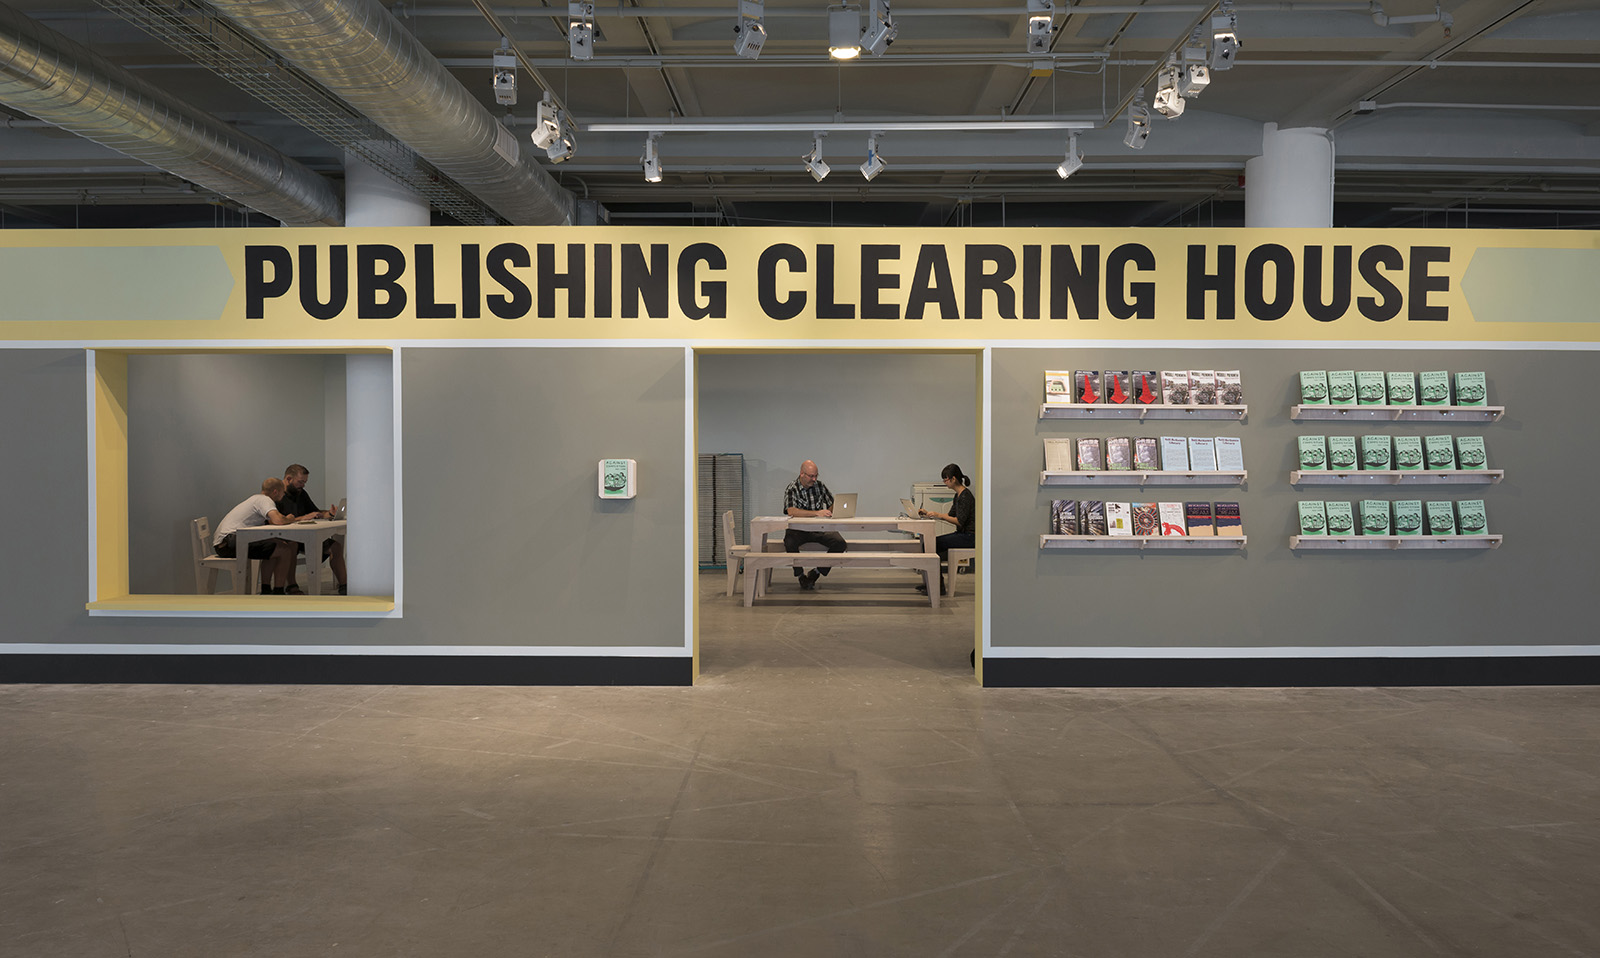 Publishing Clearing House – TEMPORARY SERVICES